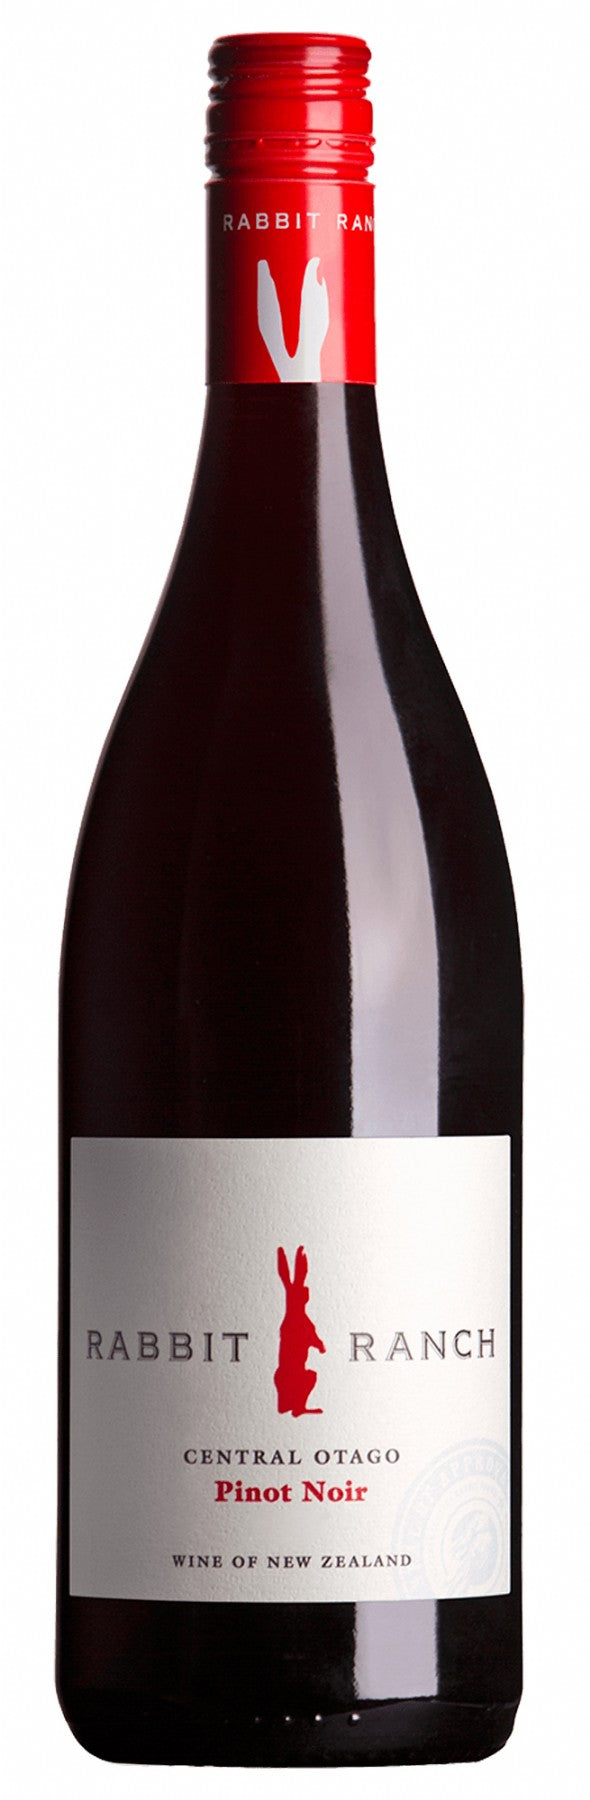 RABBIT RANCH PINOT NOIR CENTRAL OTAGO 18